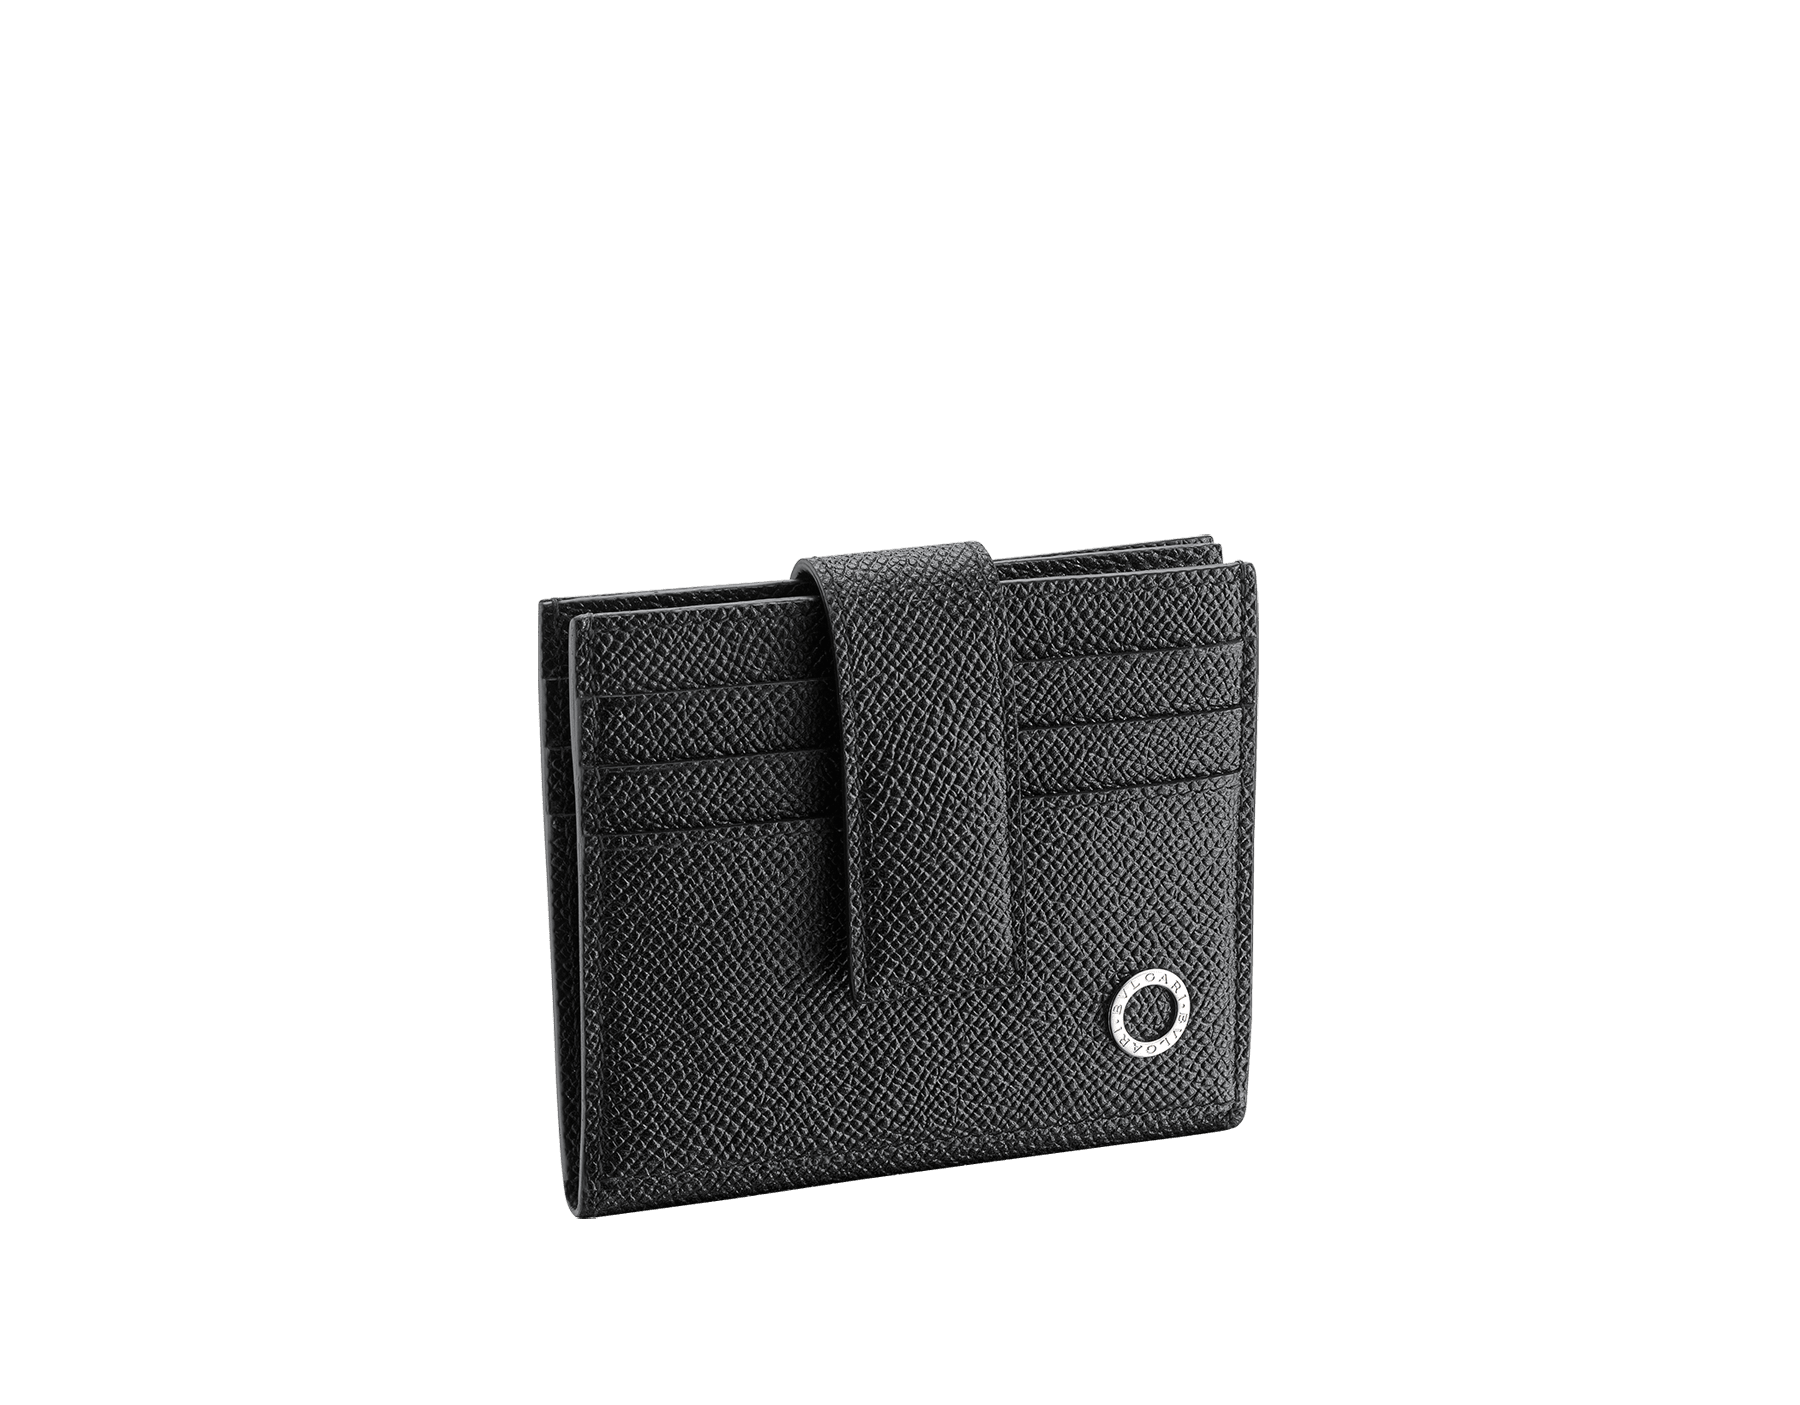 BVLGARI BVLGARI folded credit card holder in black grain calf leather. Iconic logo décor in palladium plated brass. 289232 image 1